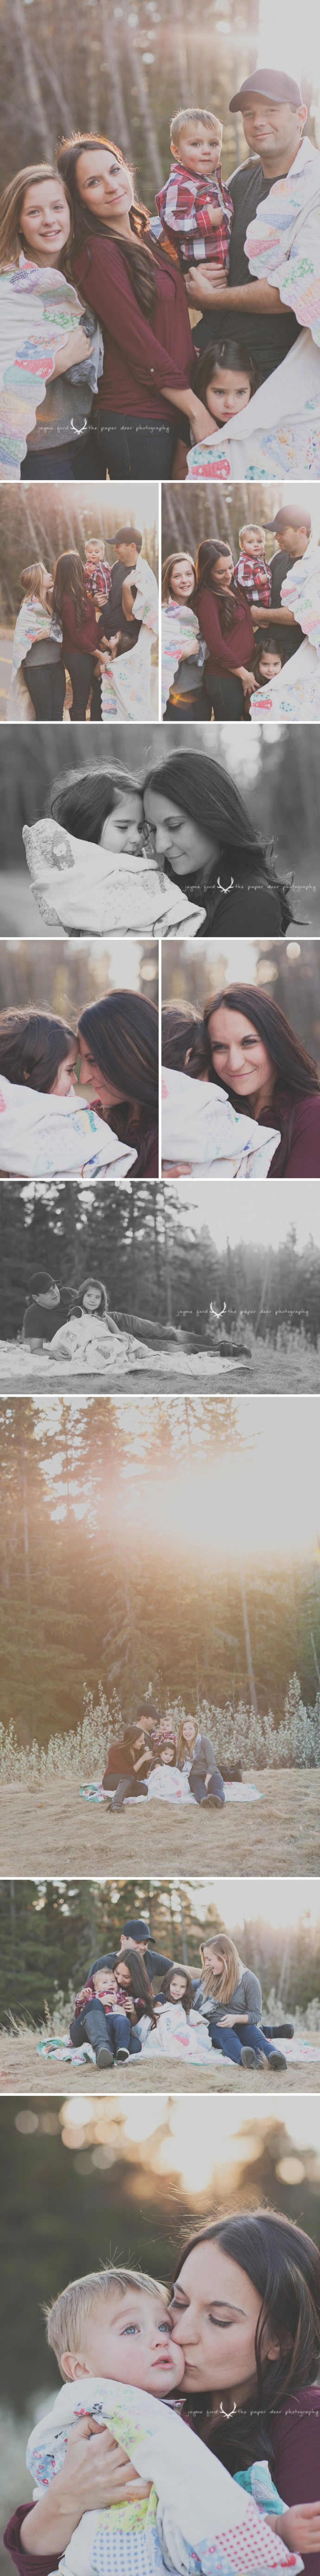 family lifestyle photography ➾ ©The Paper Deer Photography ➾ paperdeerphoto.com/blog